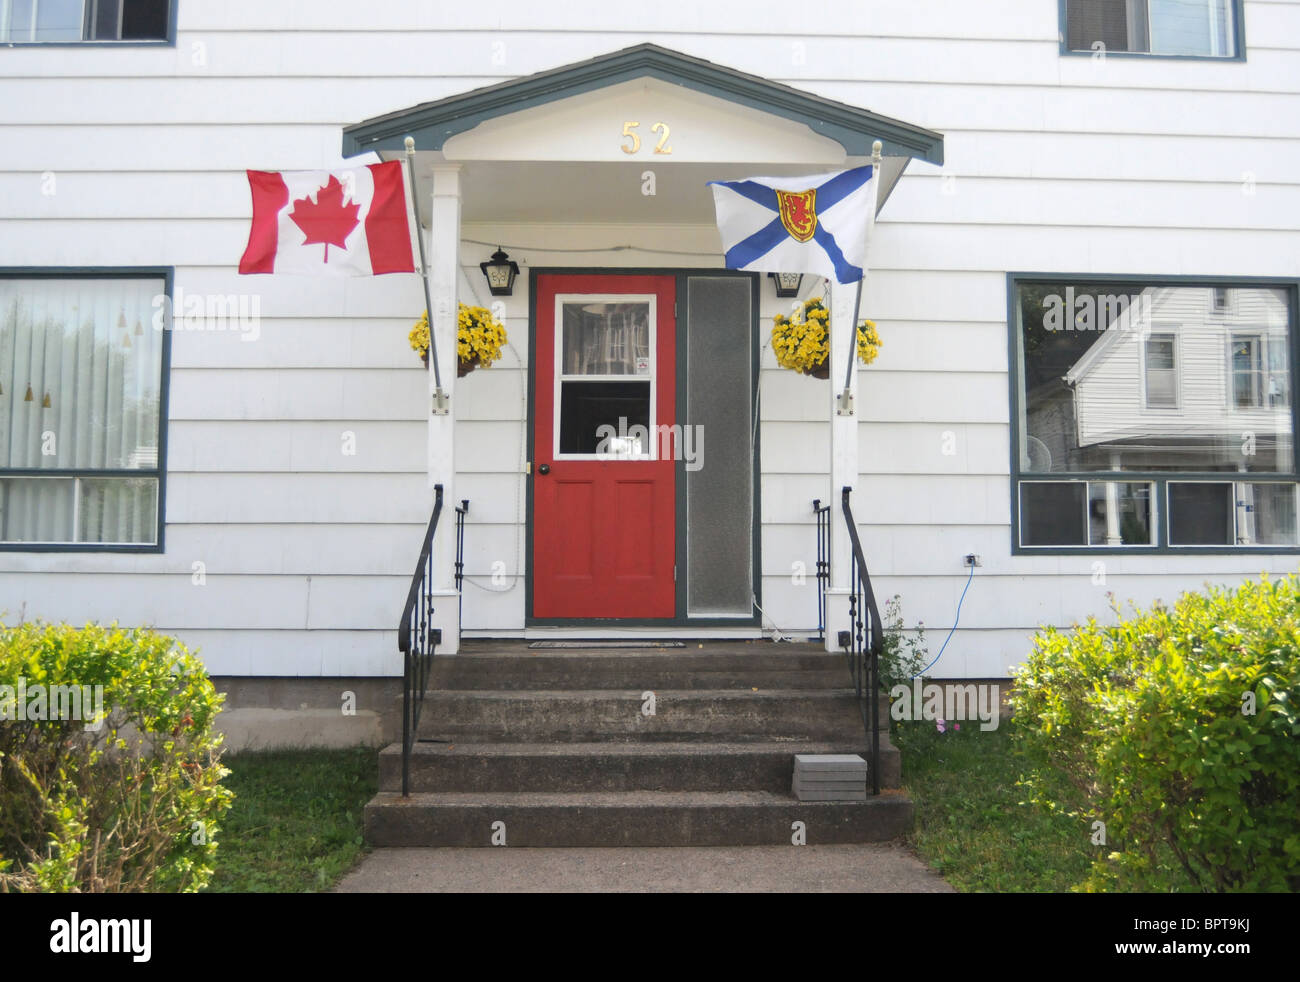 The flags of Nova Scotia and Canada are seen flying outside the home of a patriotic Canadian in Lunenburg, Nova Scotia, Canada. Stock Photo